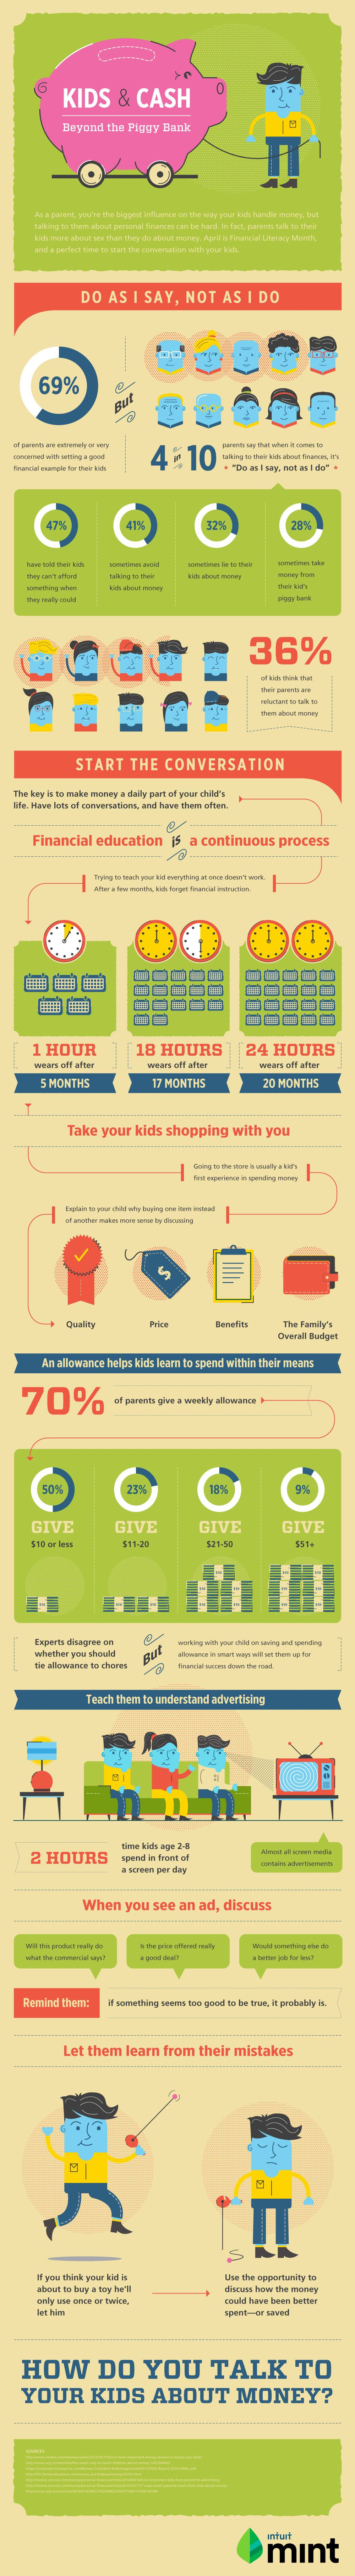 Kids and Cash: Beyond the Piggy Bank #infographic